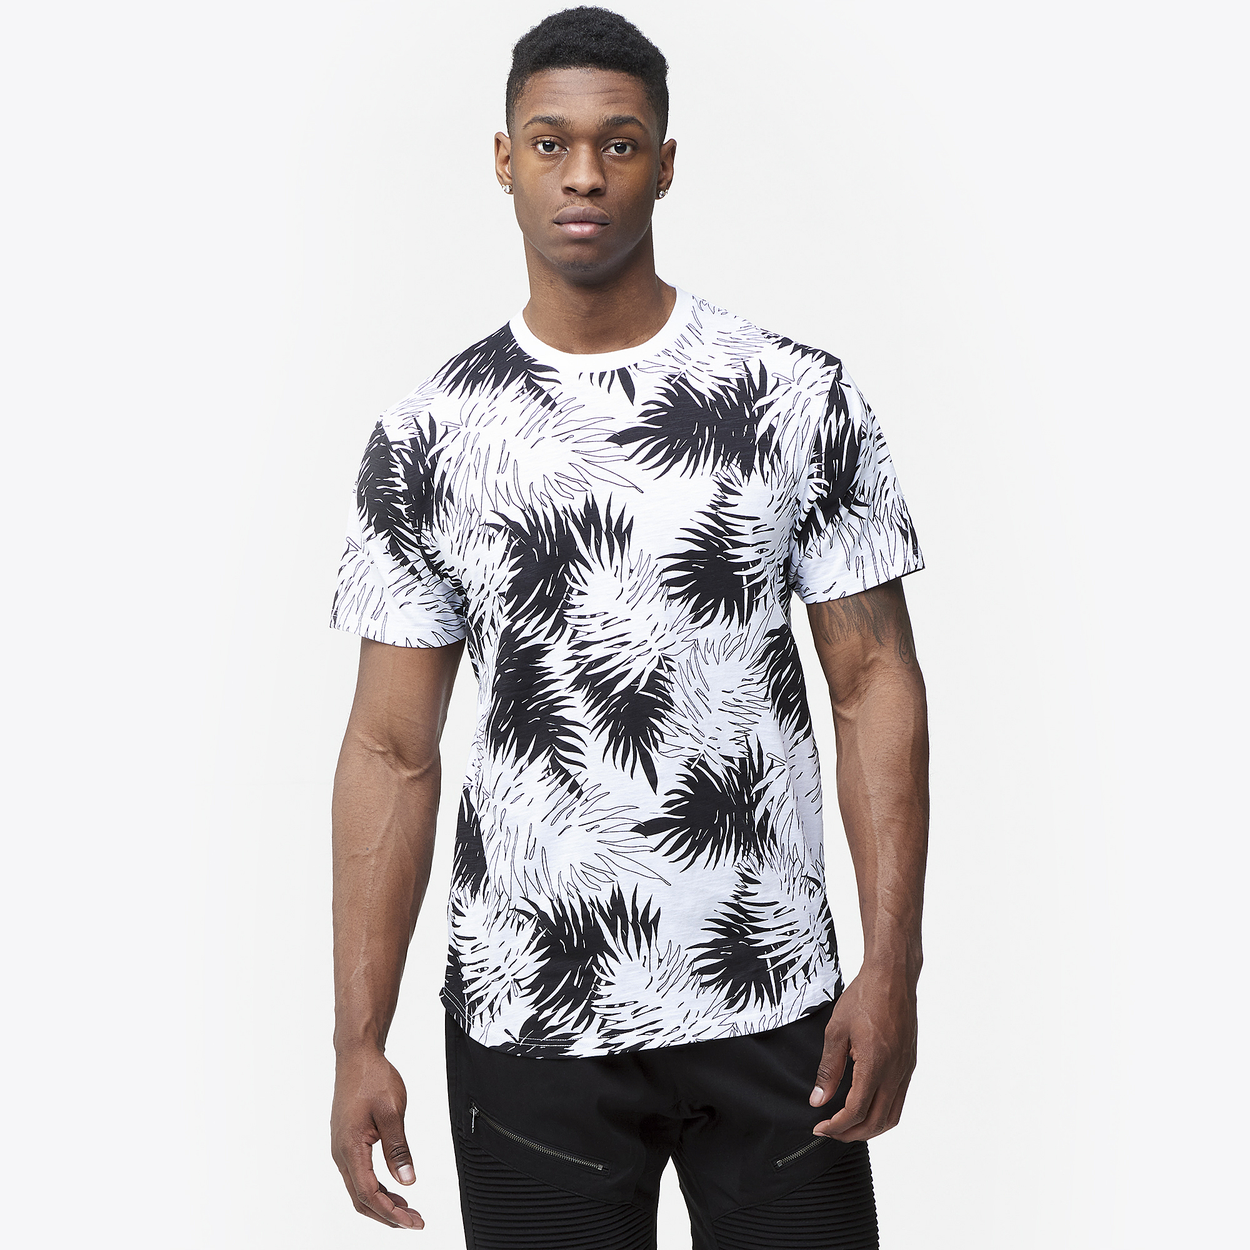 CSG JUNGLED T-SHIRT - MEN'S. Buy One Select CSG Product Get 50% Off A 2nd Product.